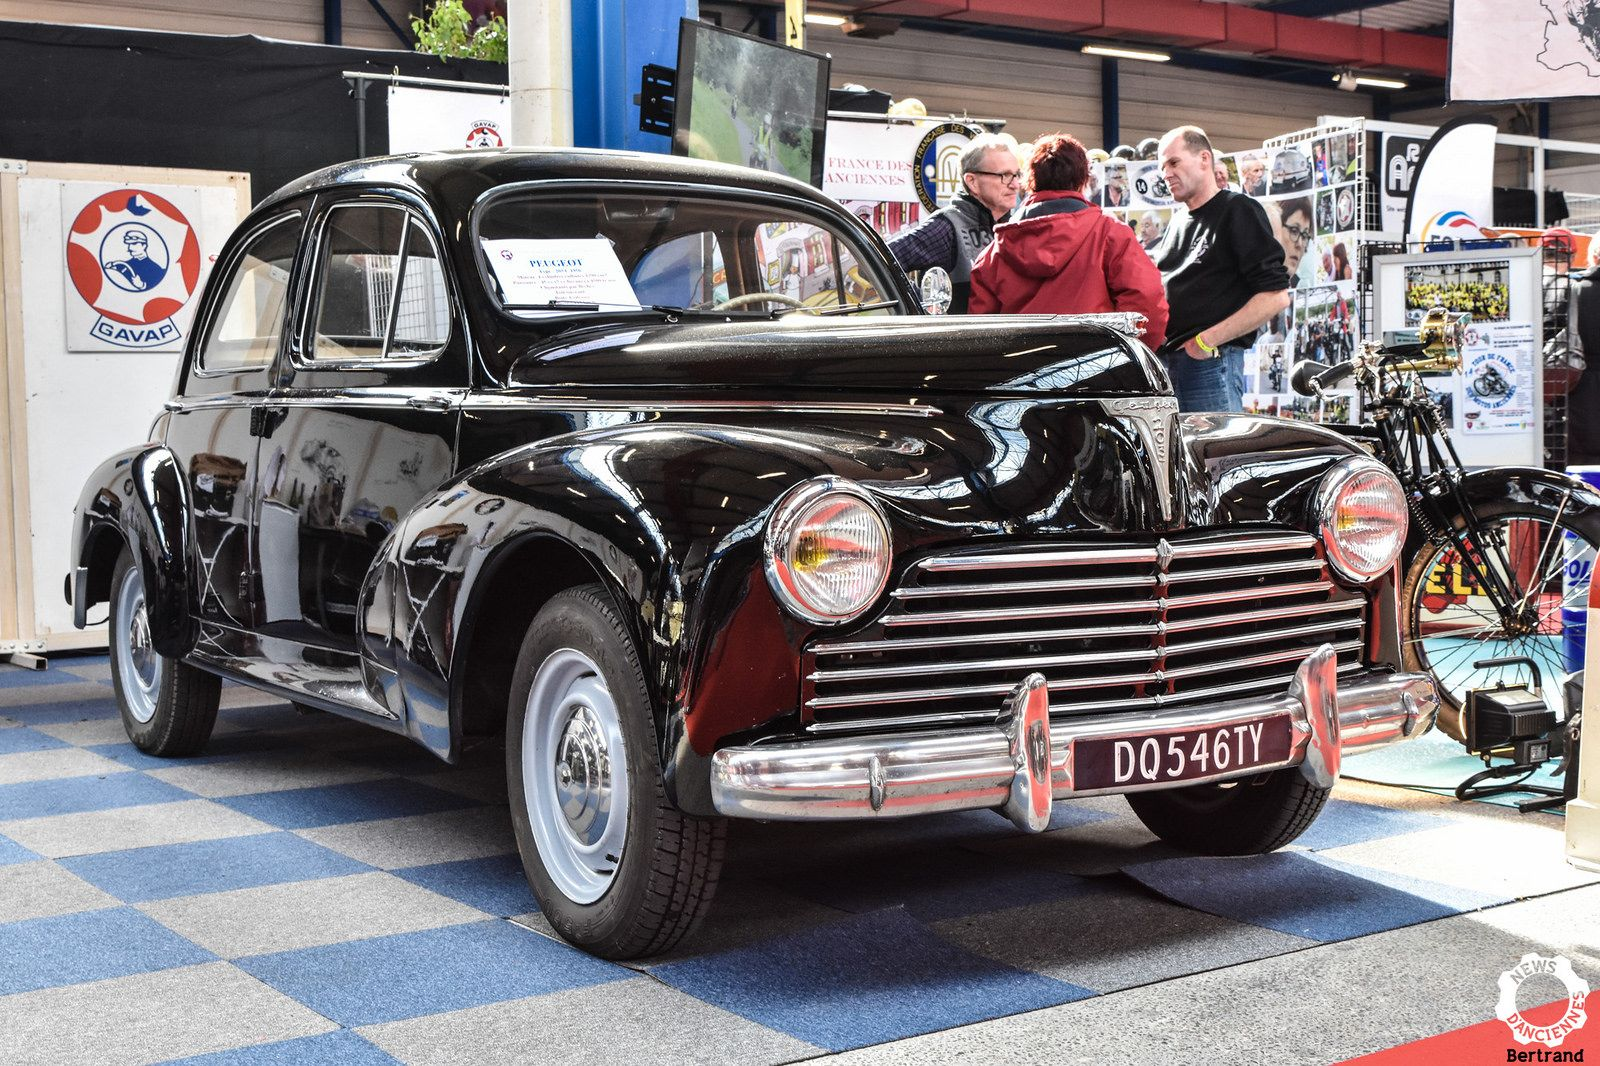 Salon Auto Reims Salon De Reims 2017 168 Peugeot 203 Peugeot Antique Cars Cars